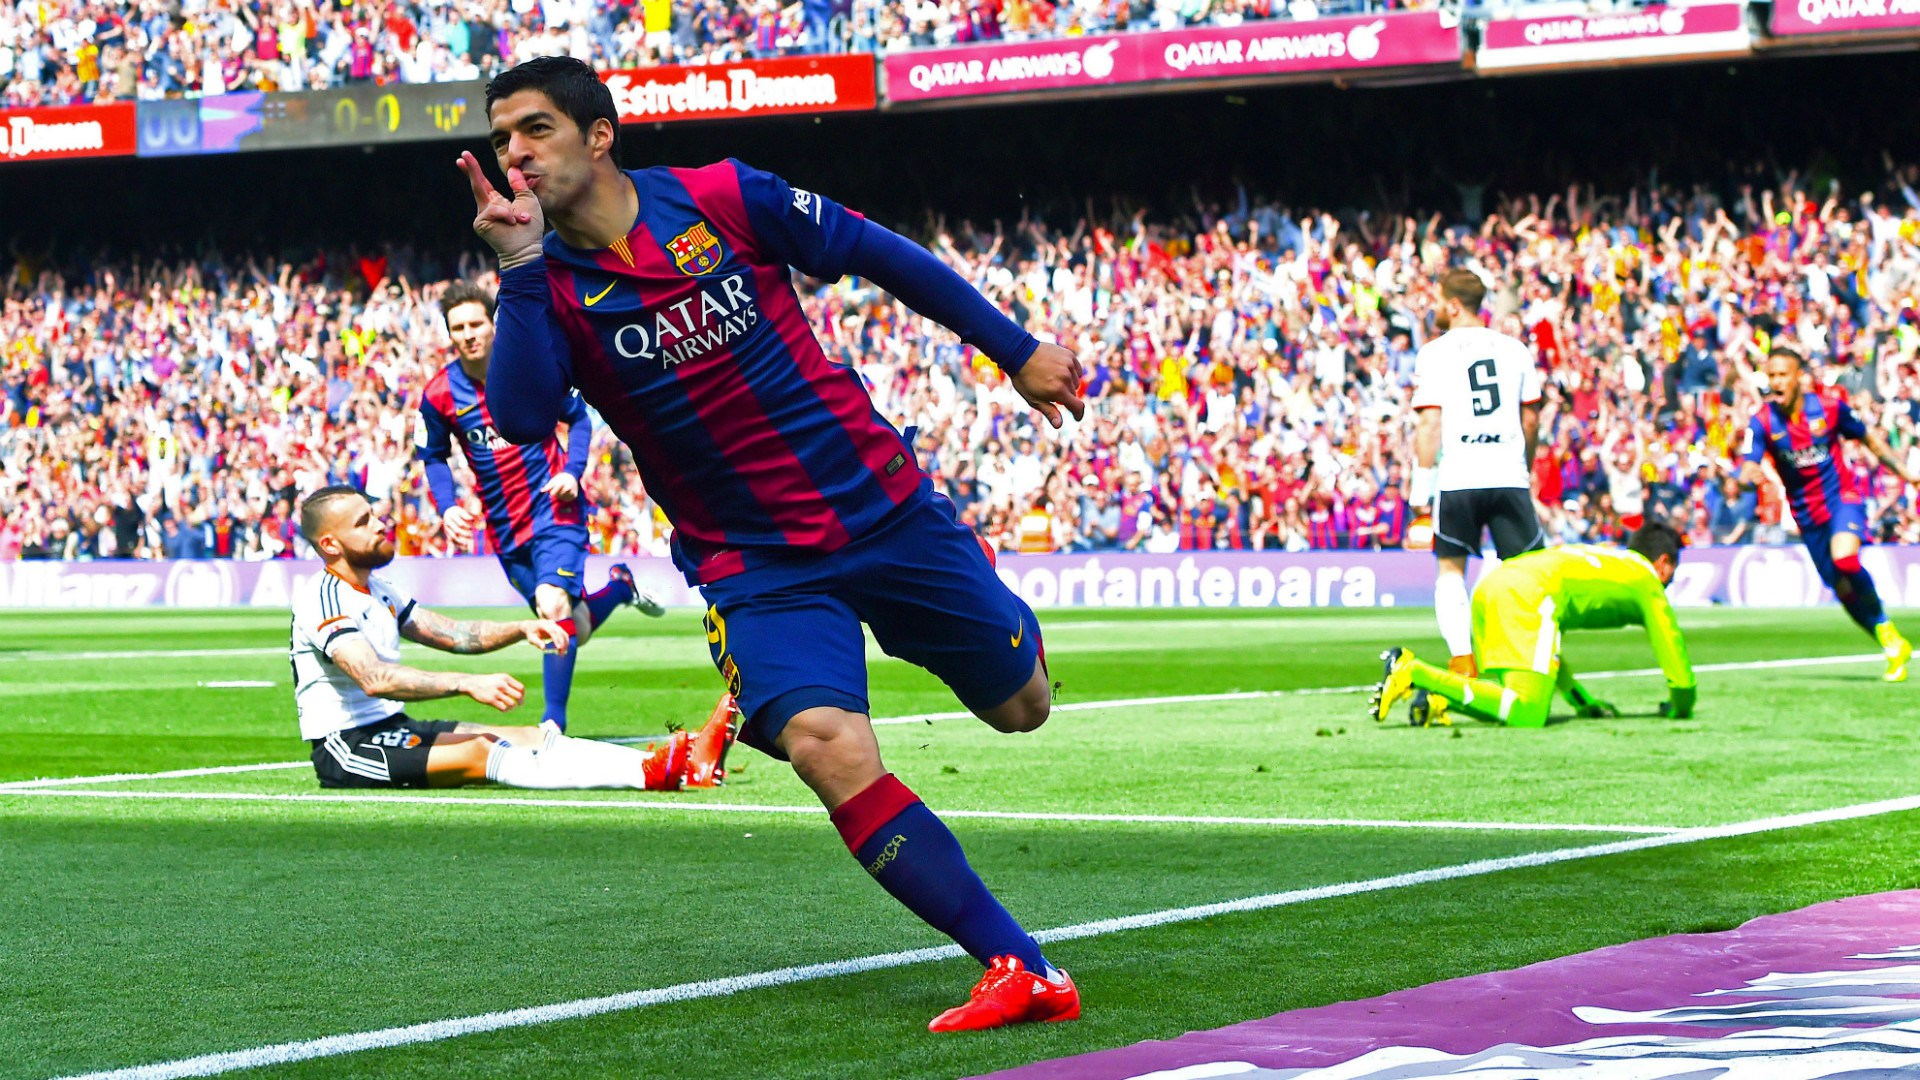 suarez fc barcelona wallpapers posted by ethan thompson suarez fc barcelona wallpapers posted